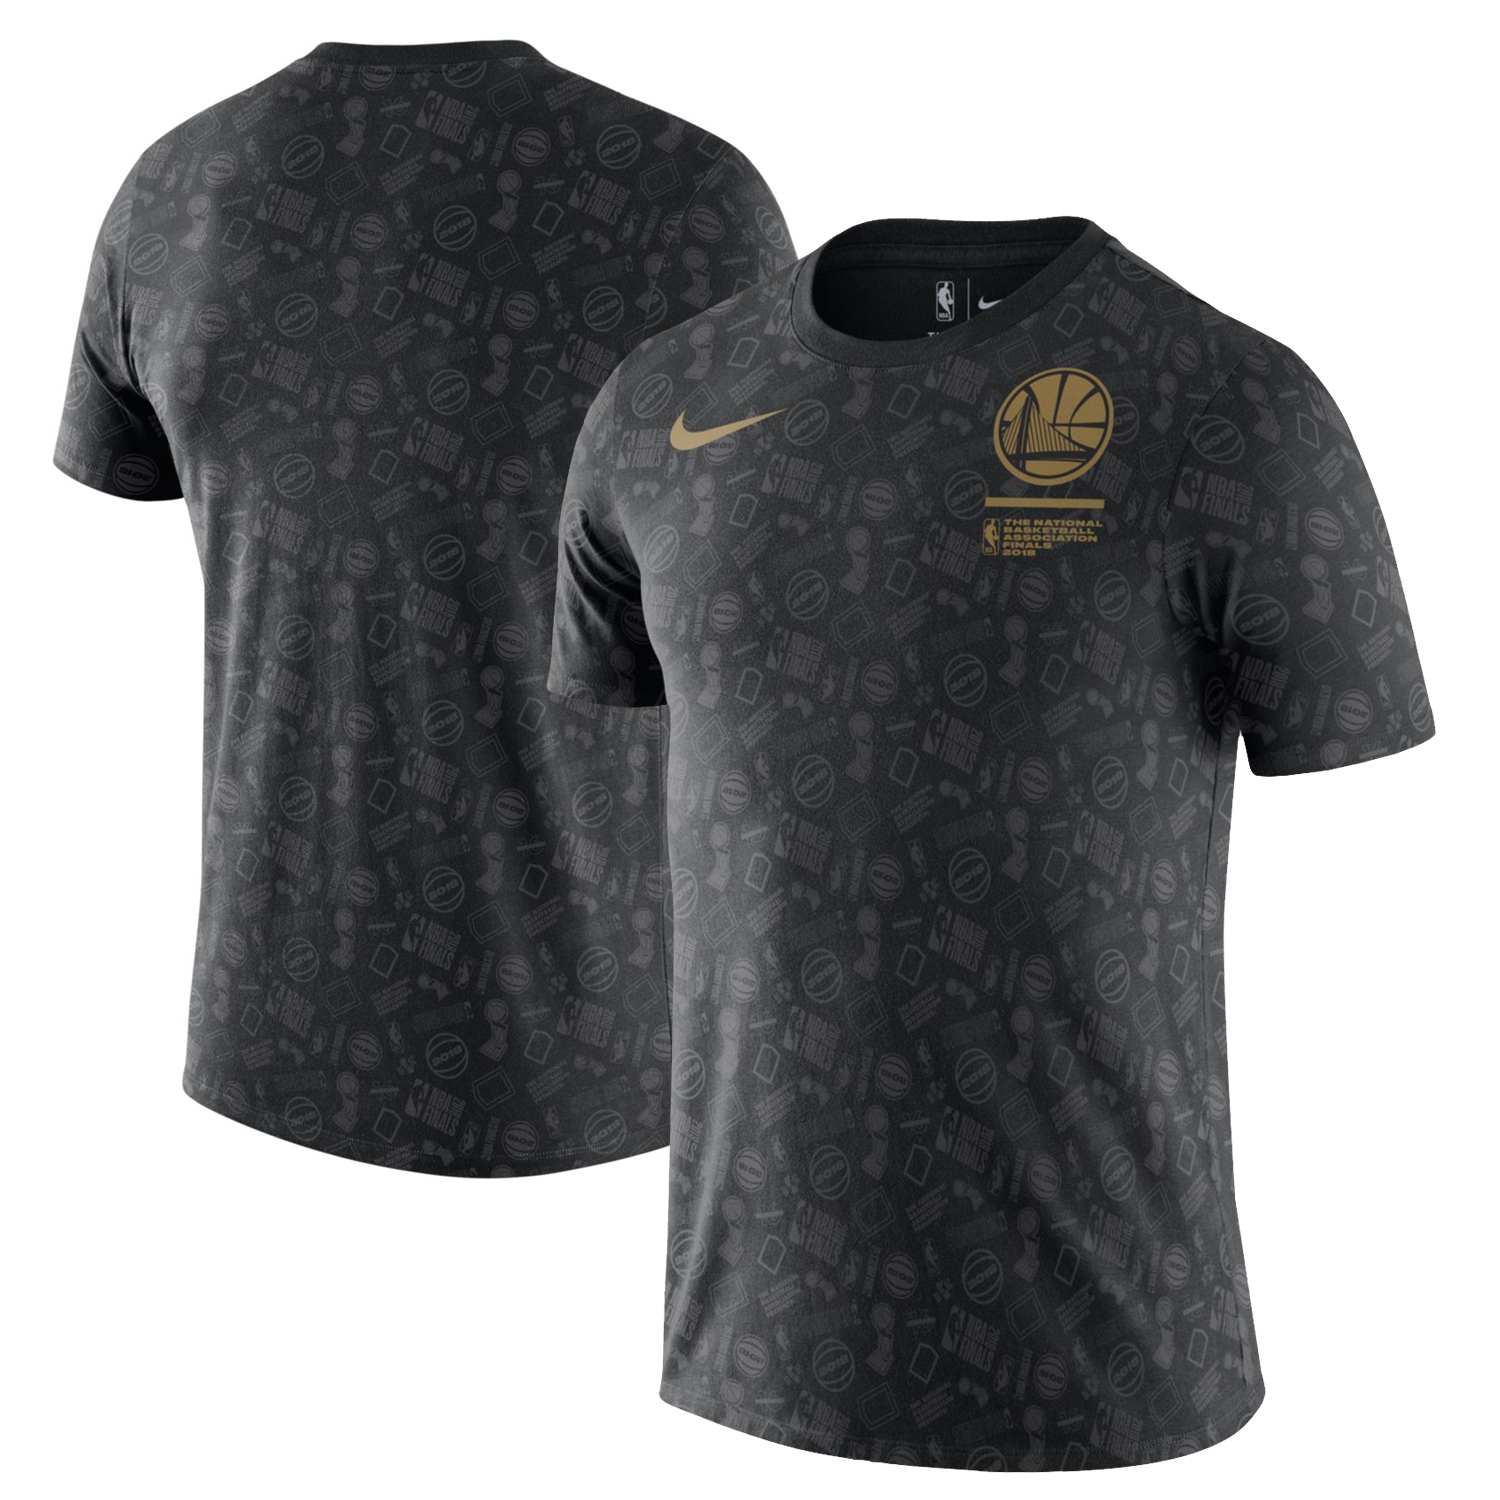 Golden State Warriors Nike 2018 NBA Finals Bound All Over Print Cotton Performance T-Shirt - Black